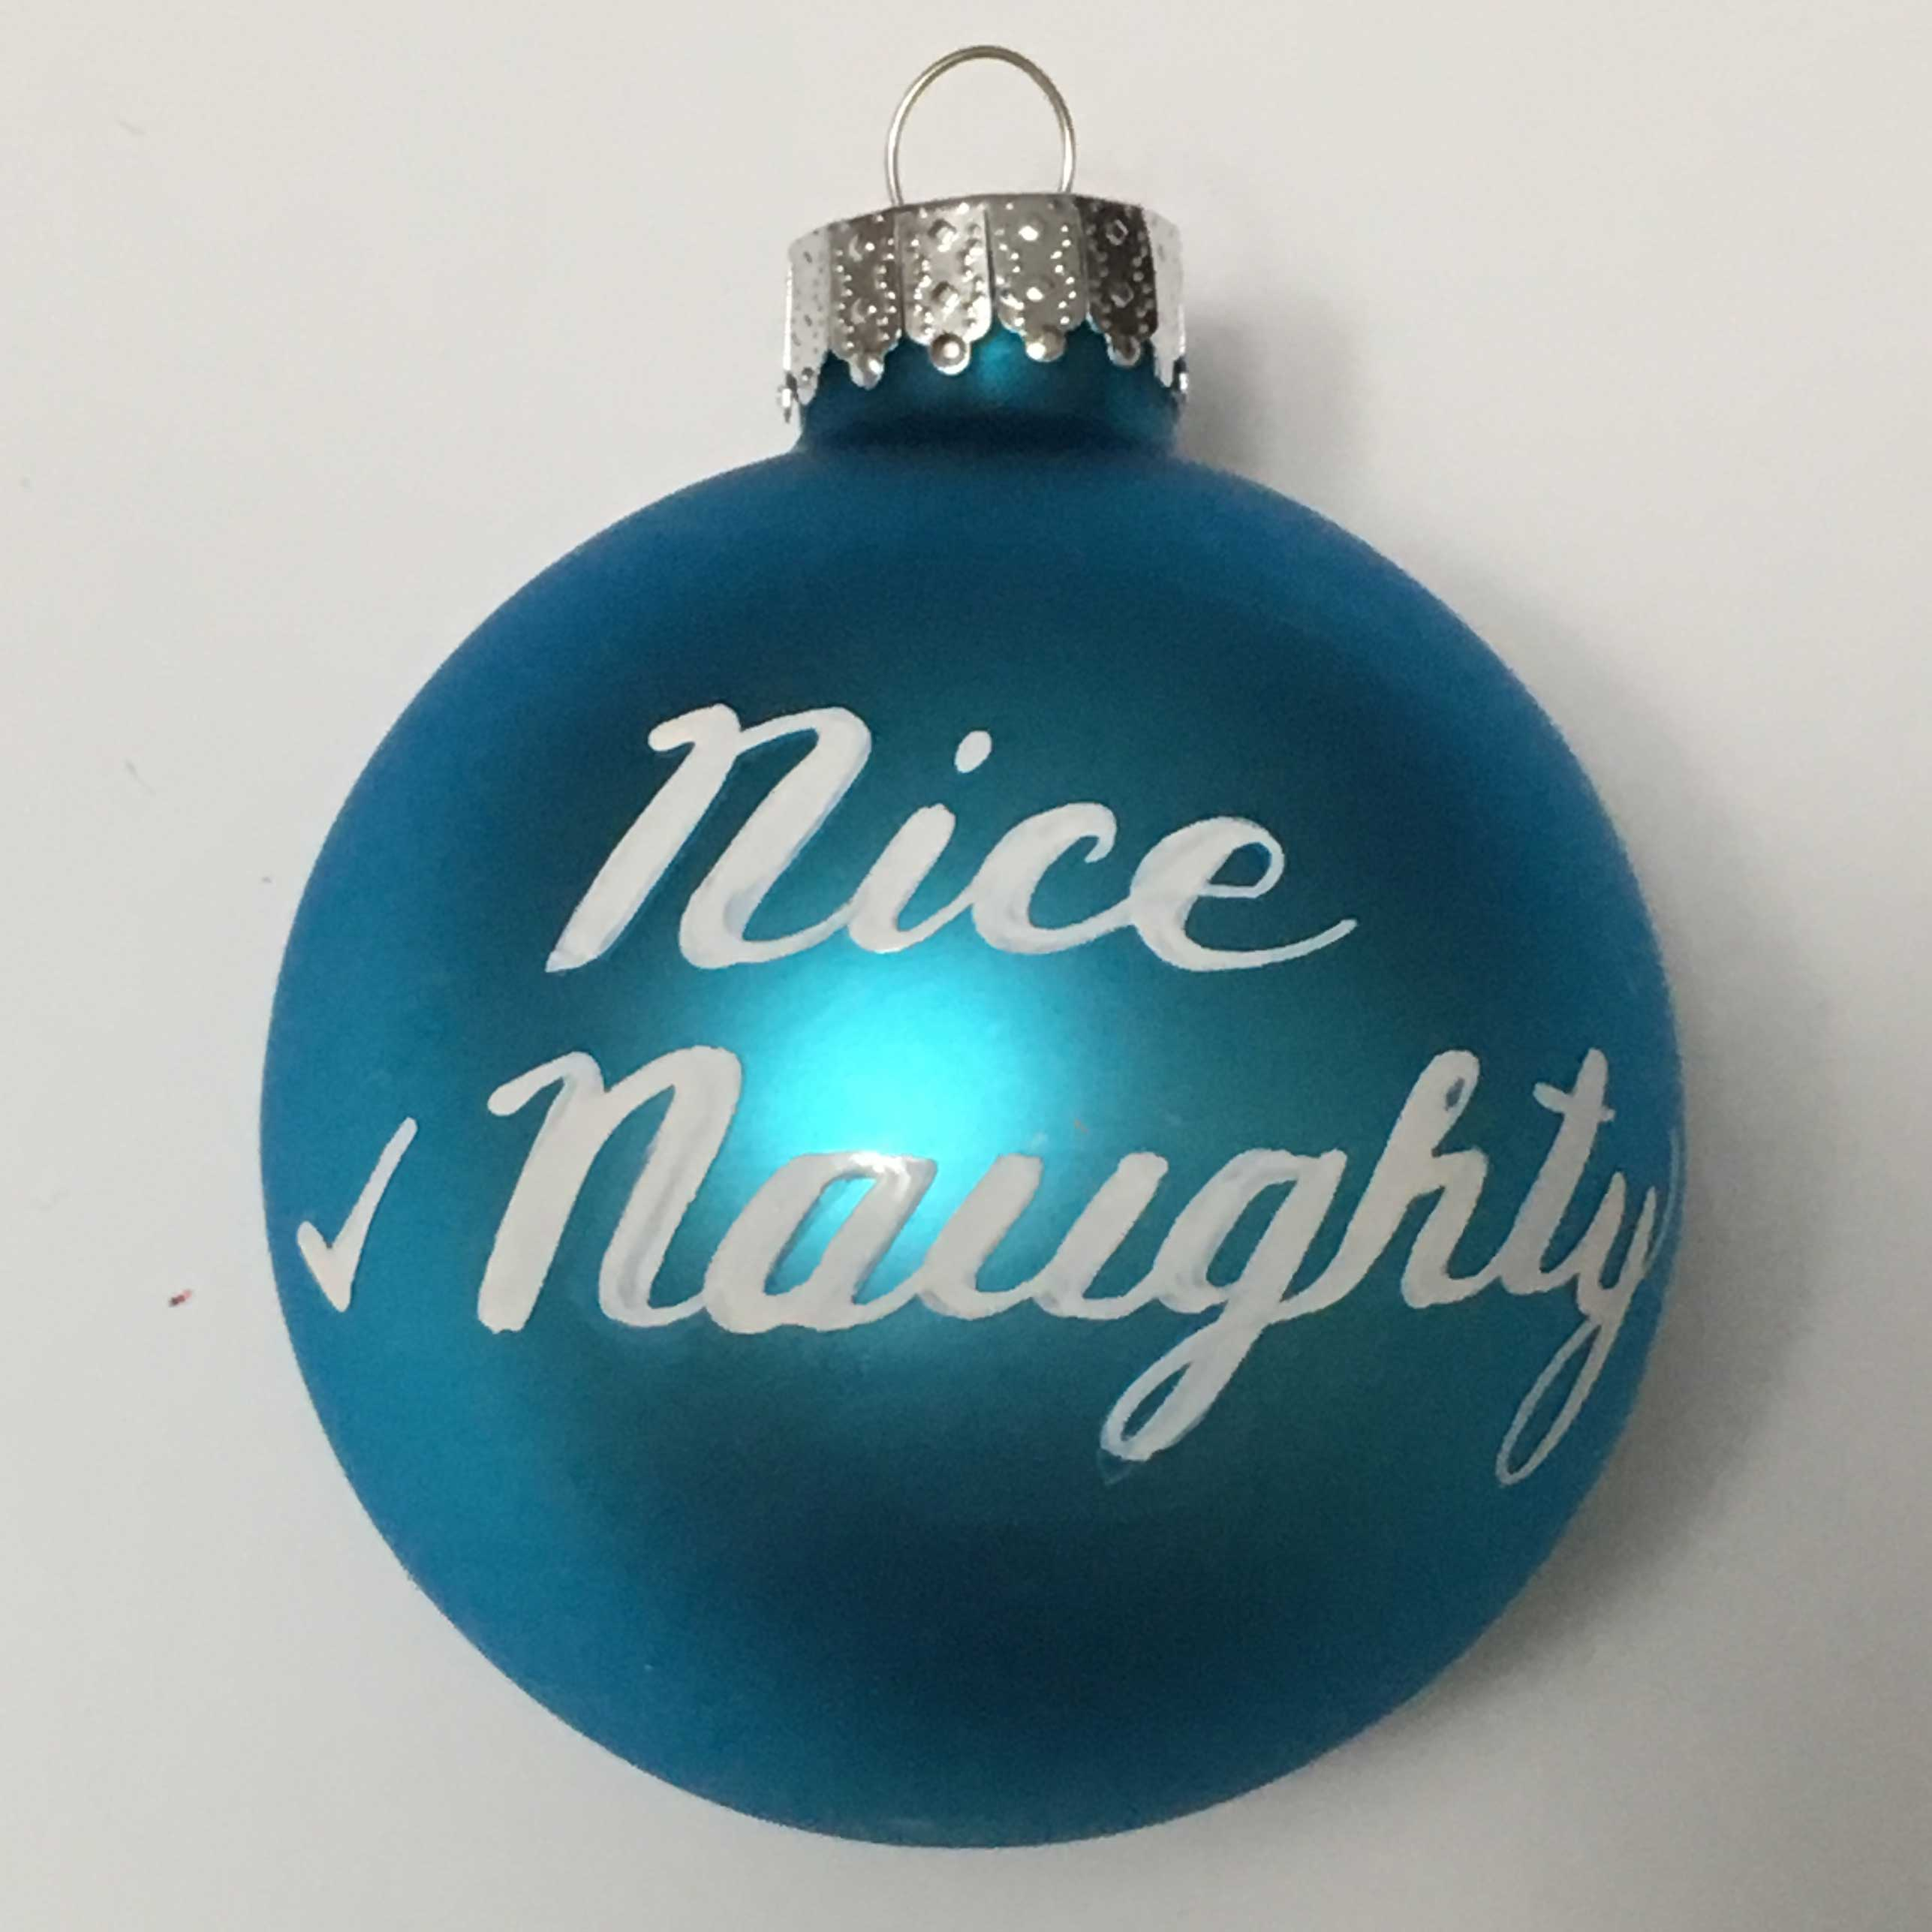 Nice Naughty ornament